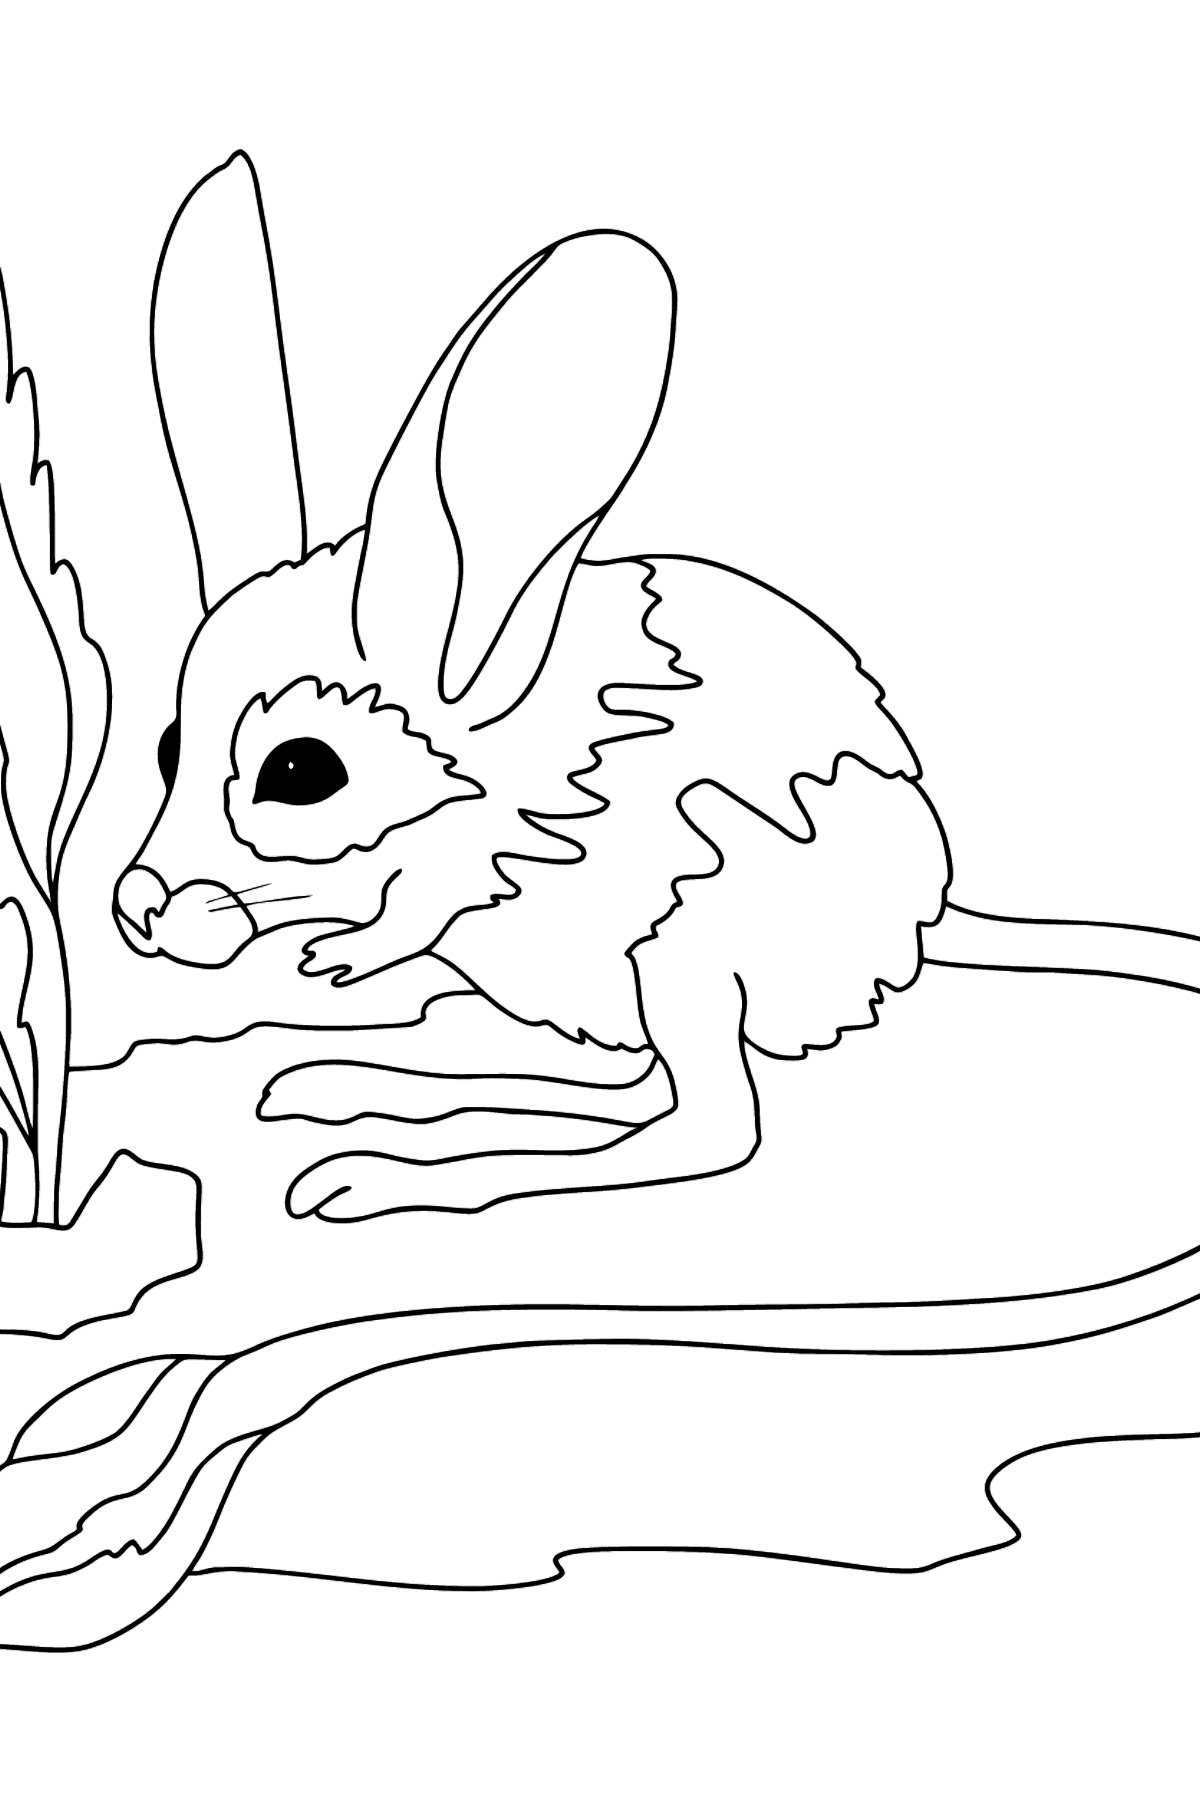 Coloring Page - A Jerboa is Looking Scared - Coloring Pages for Kids